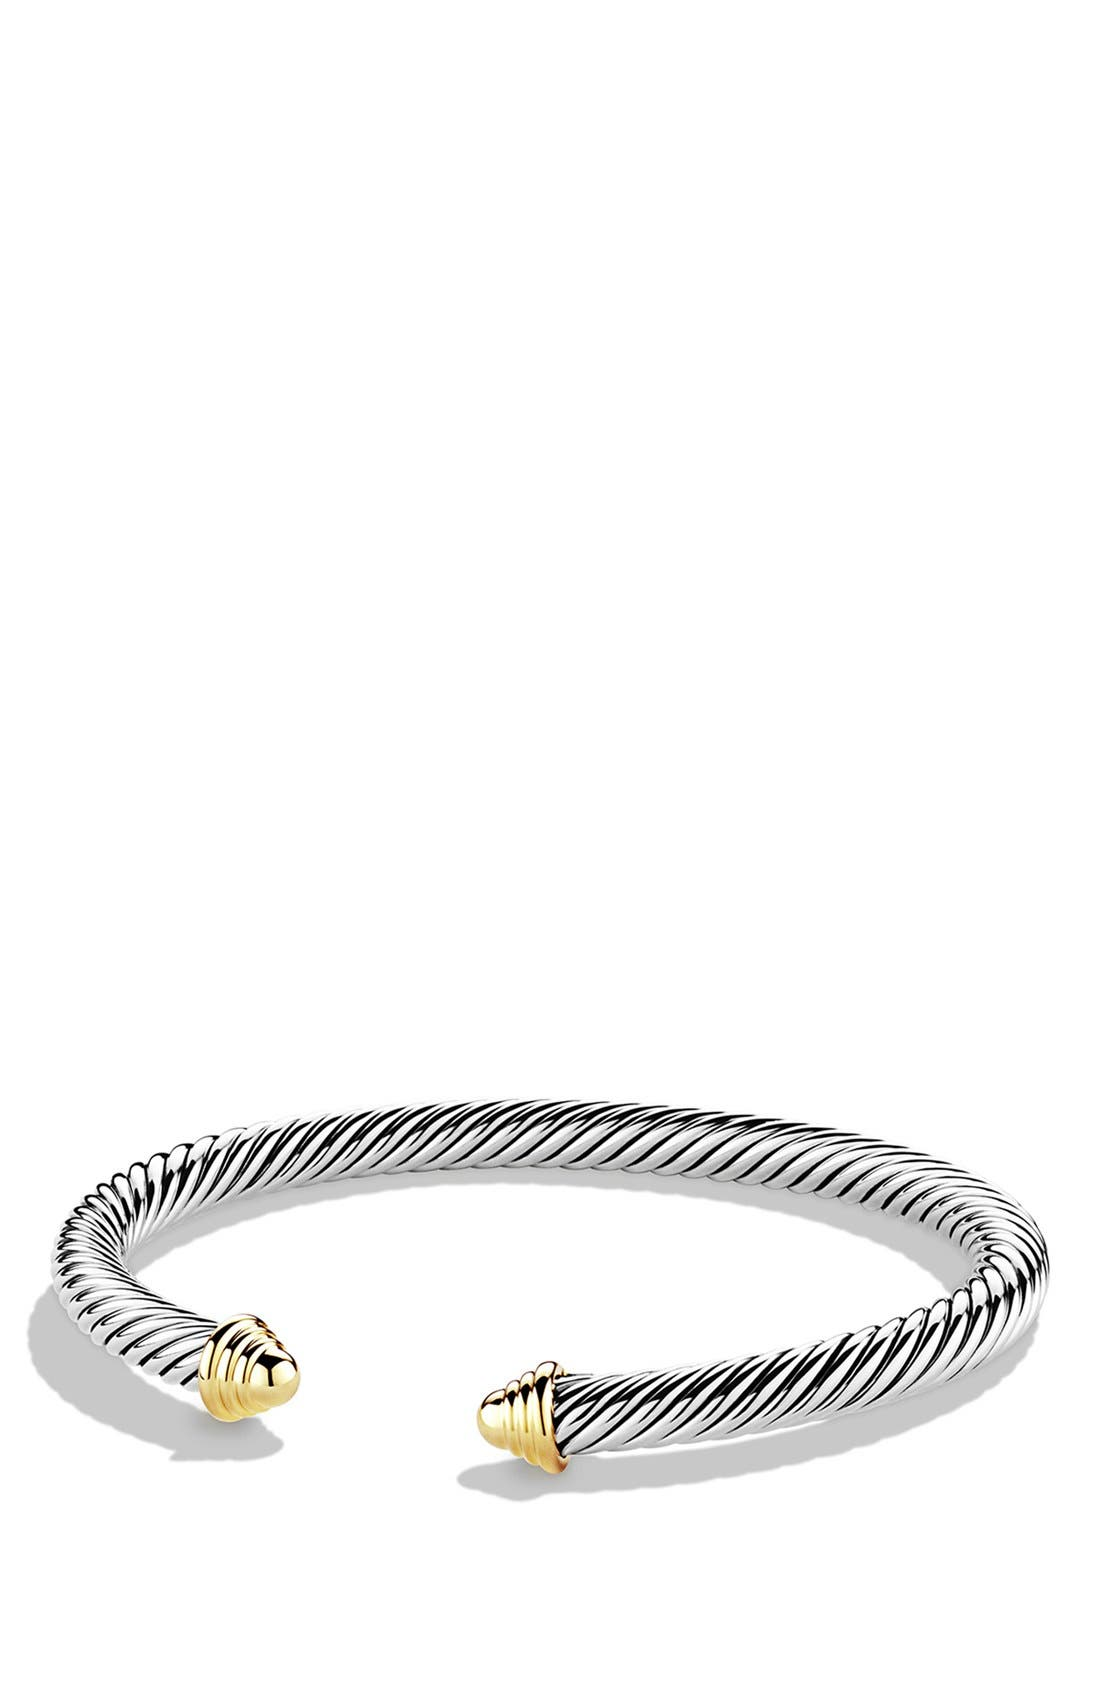 Cable Classics Bracelet with 14K Gold, 5mm,                             Main thumbnail 1, color,                             TWO TONE